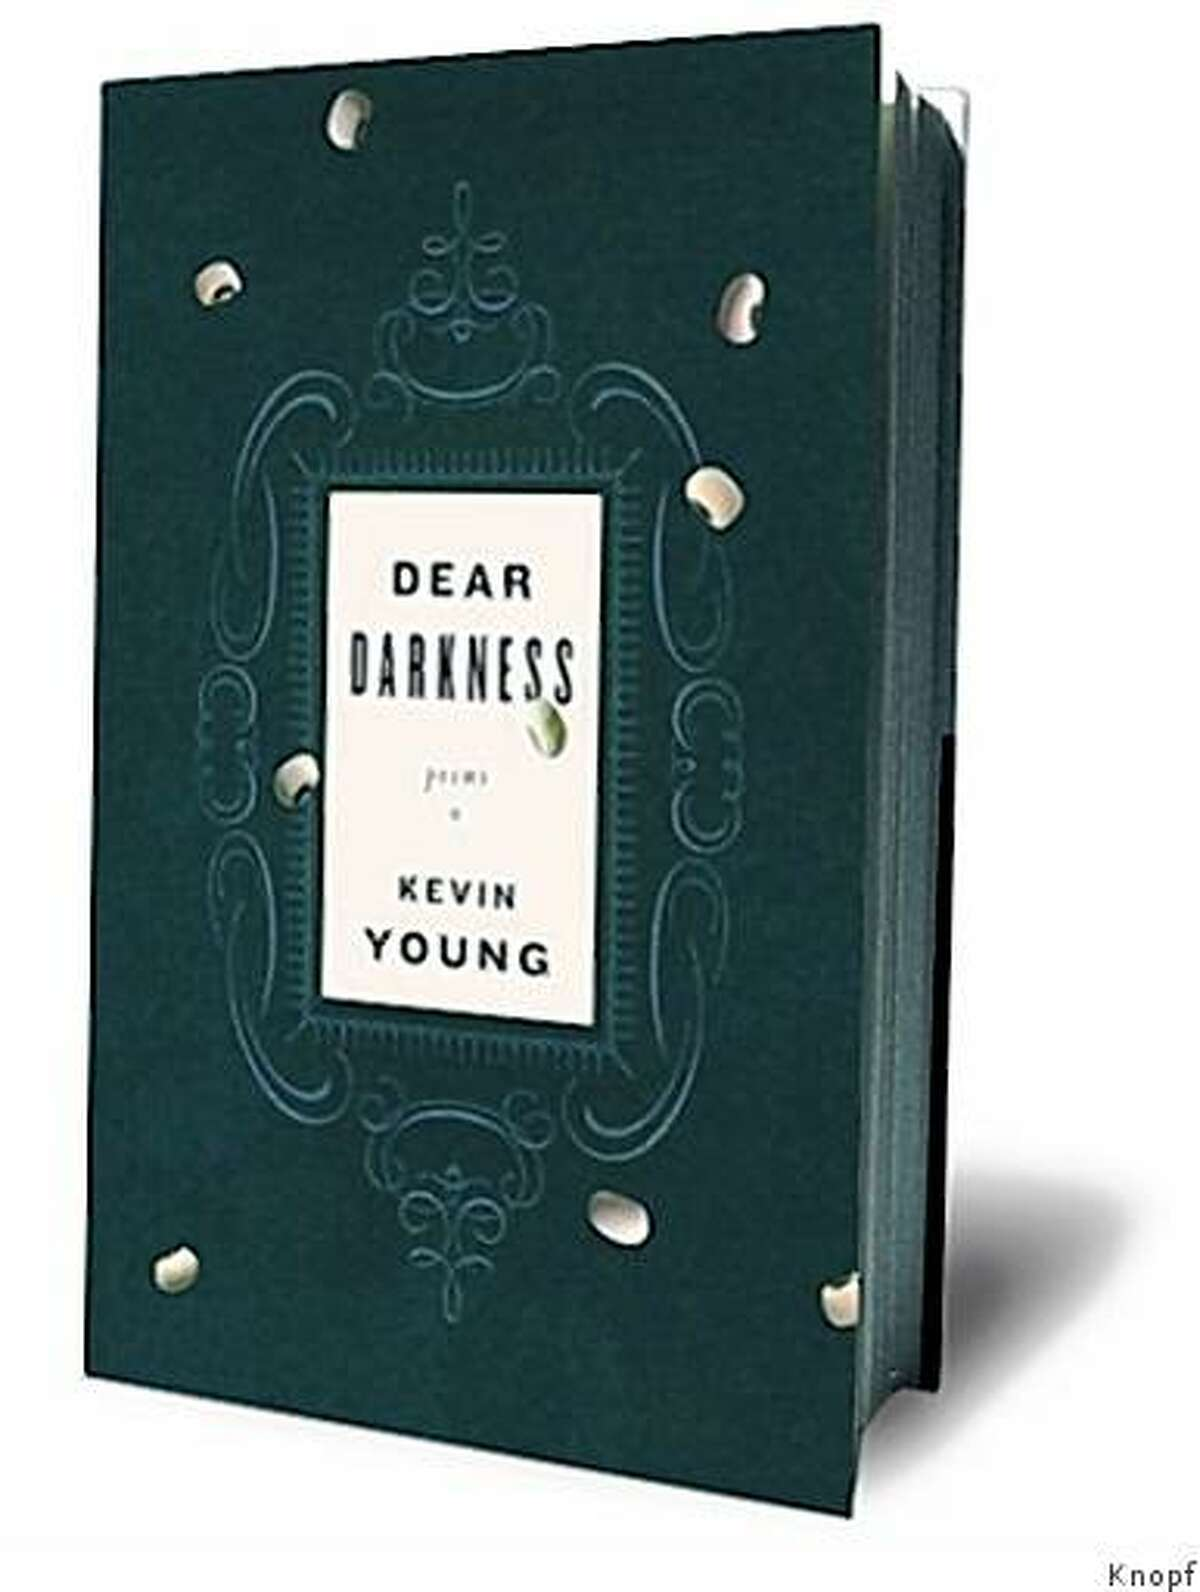 Dear Darkness: Poems by Kevin Young